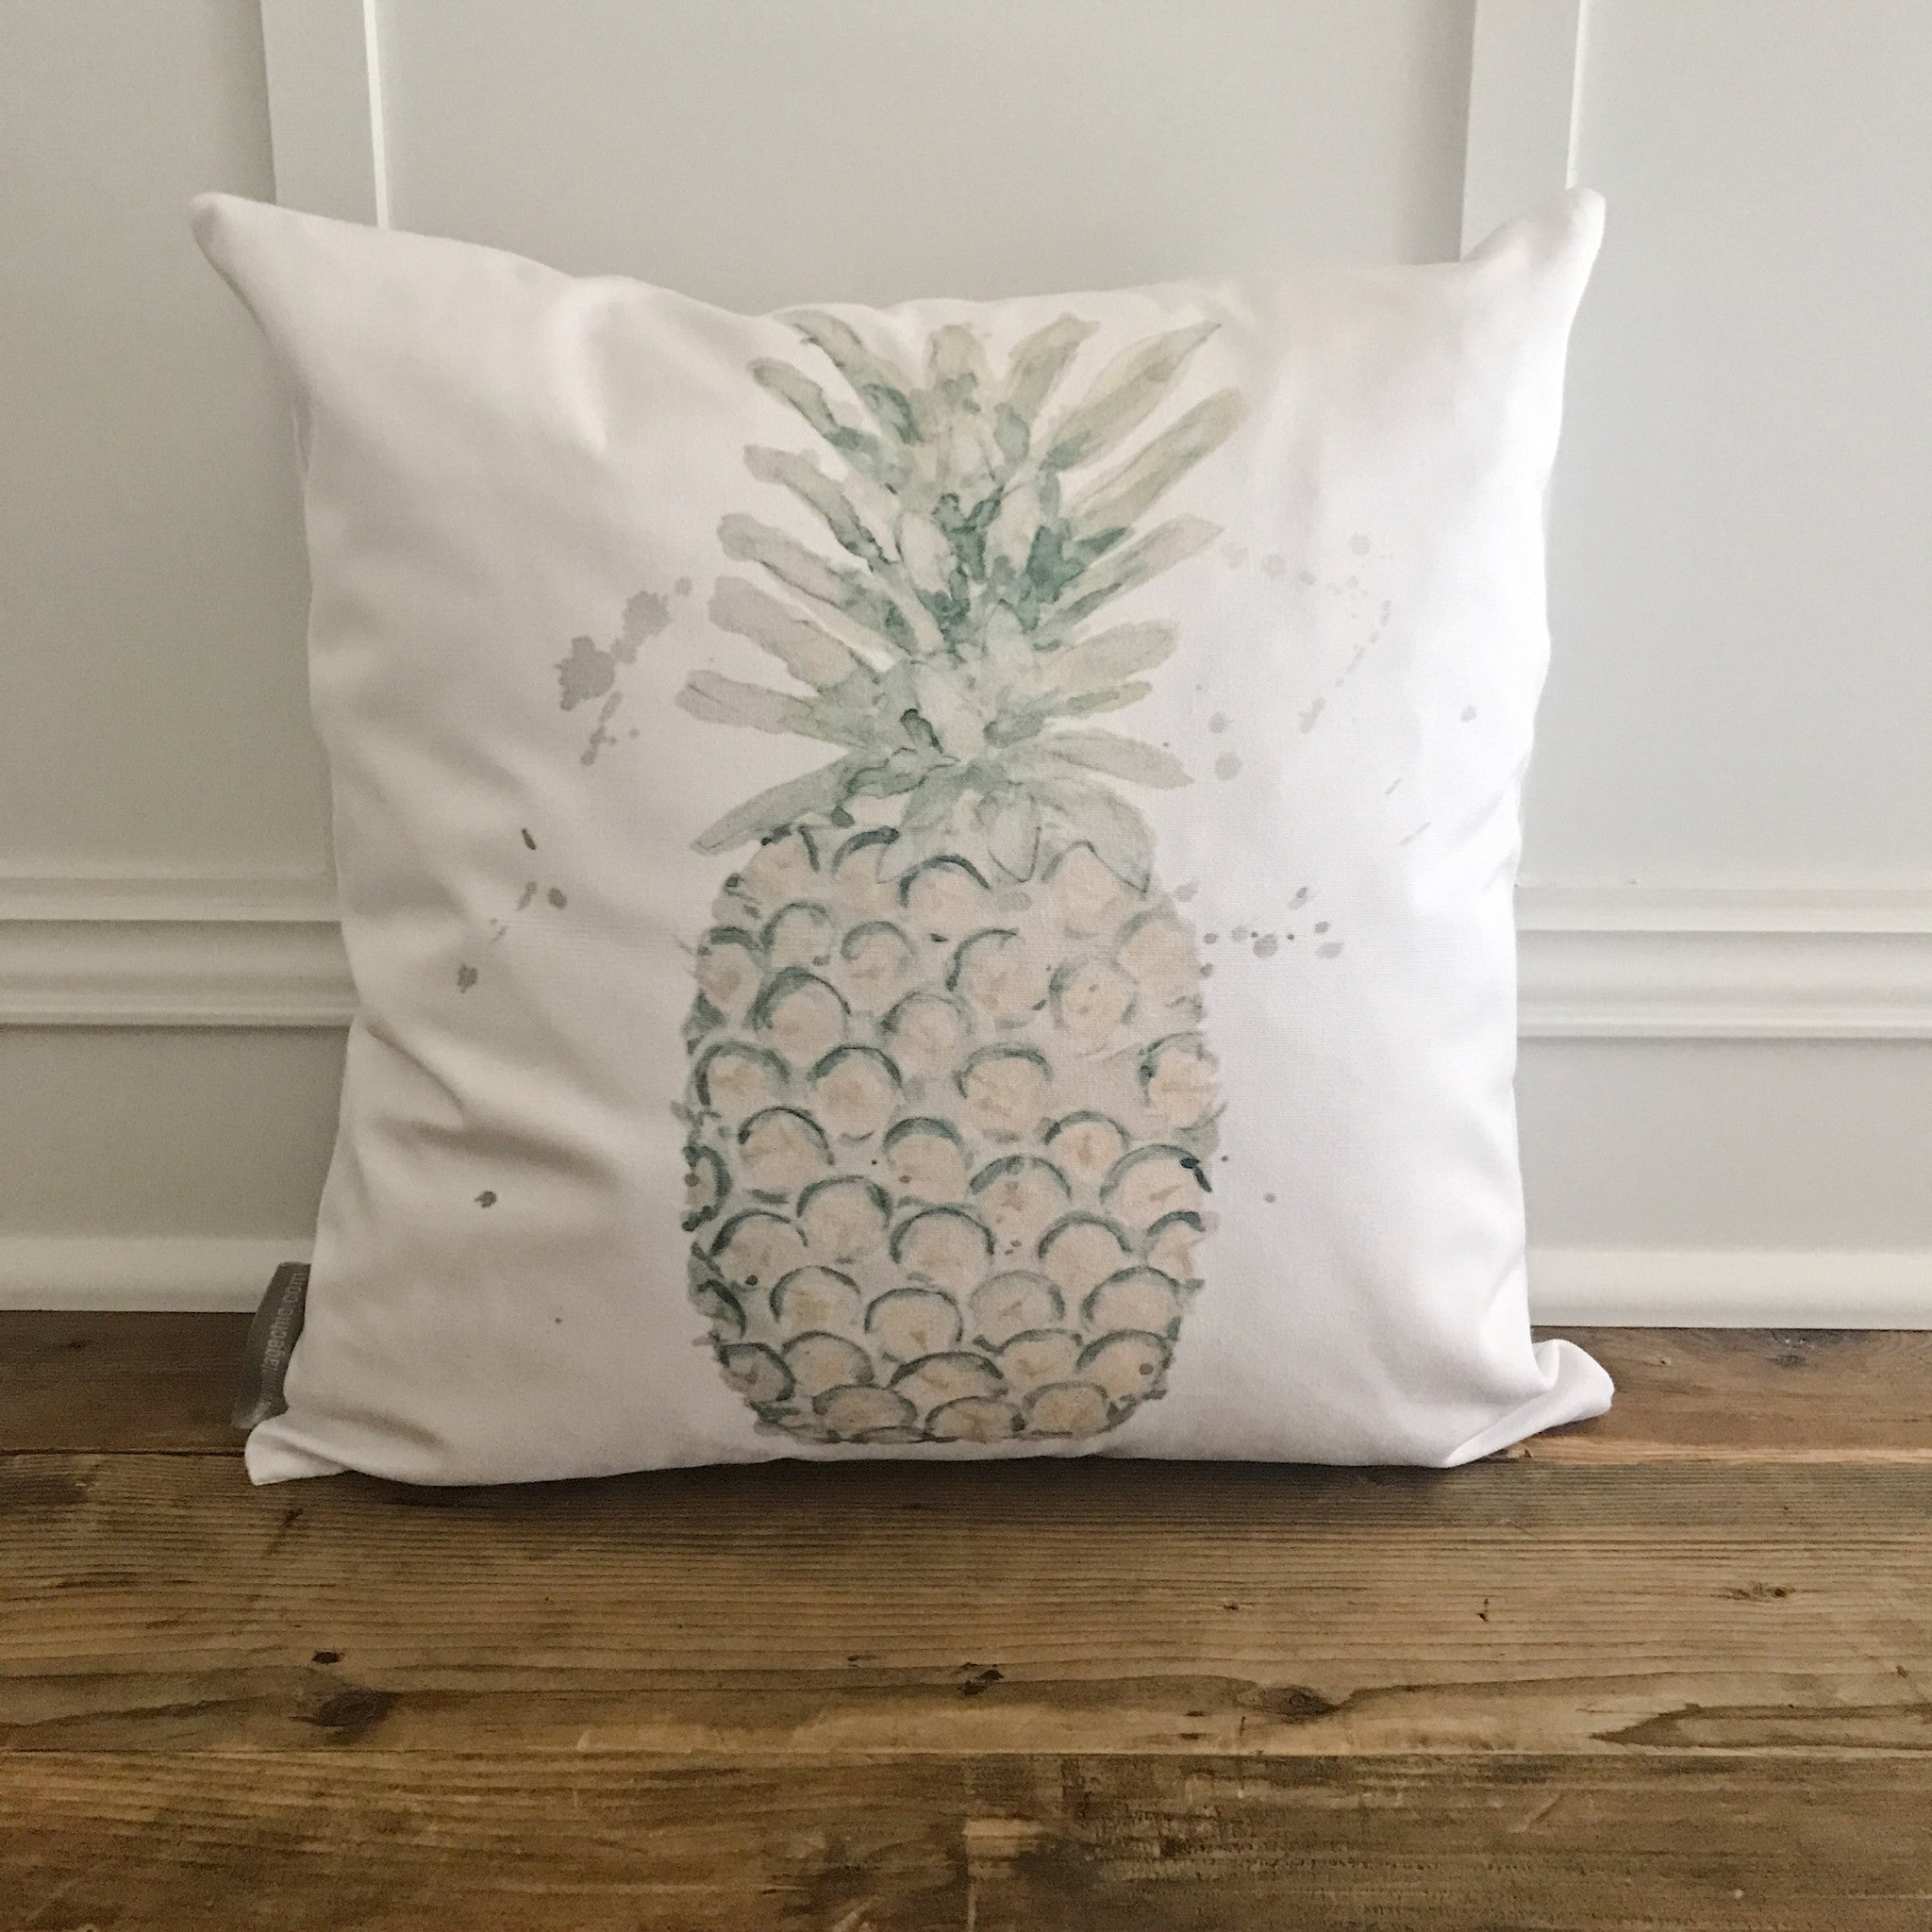 my works eye bg pillows youre throwpillow pineapple people by leeannjwalker the re pillow of small throw you